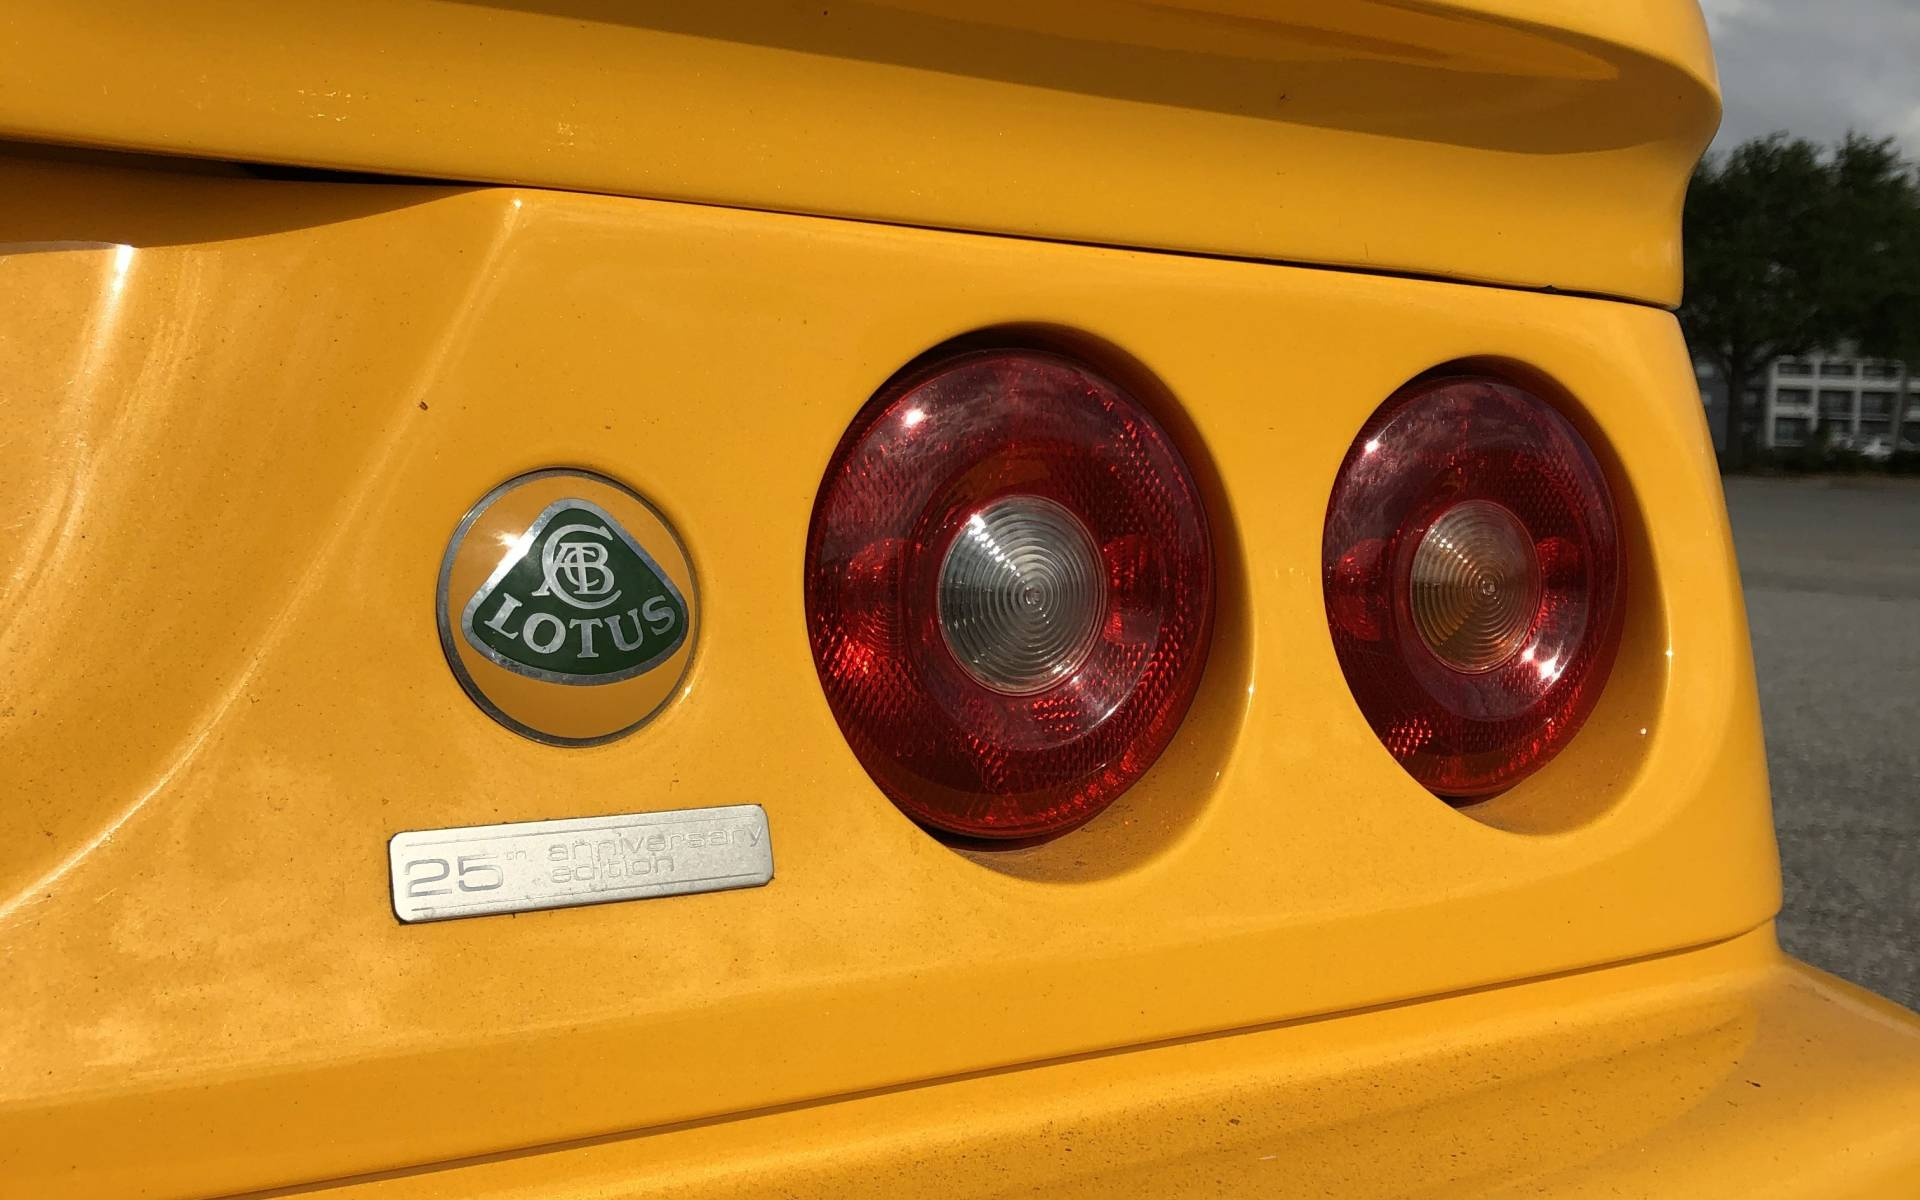 <p><strong>Lotus Esprit V8</strong></p>